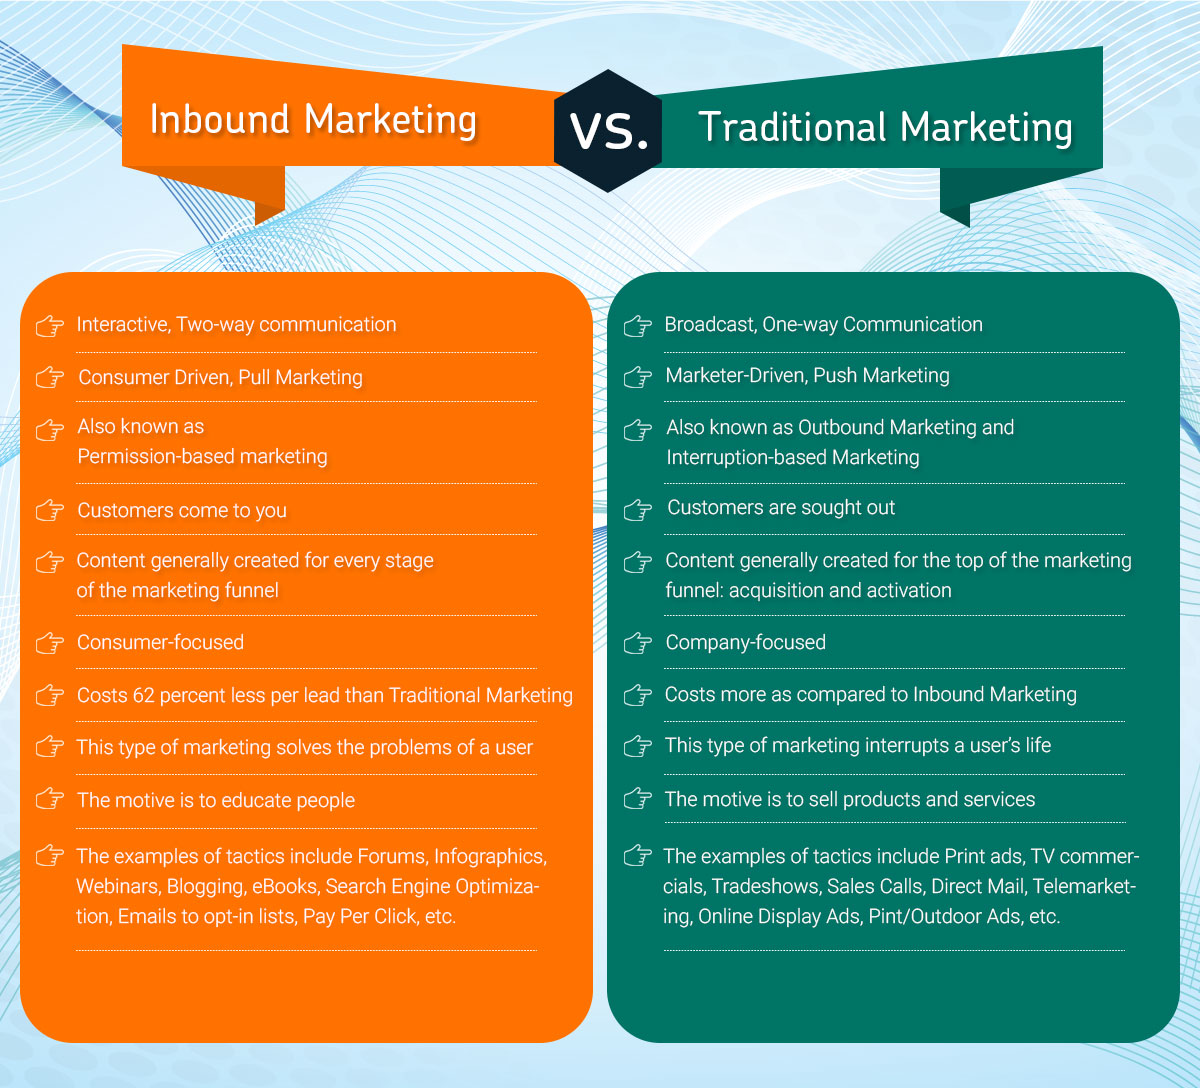 Inbound Marketing Services vs Traditional Marketing Services